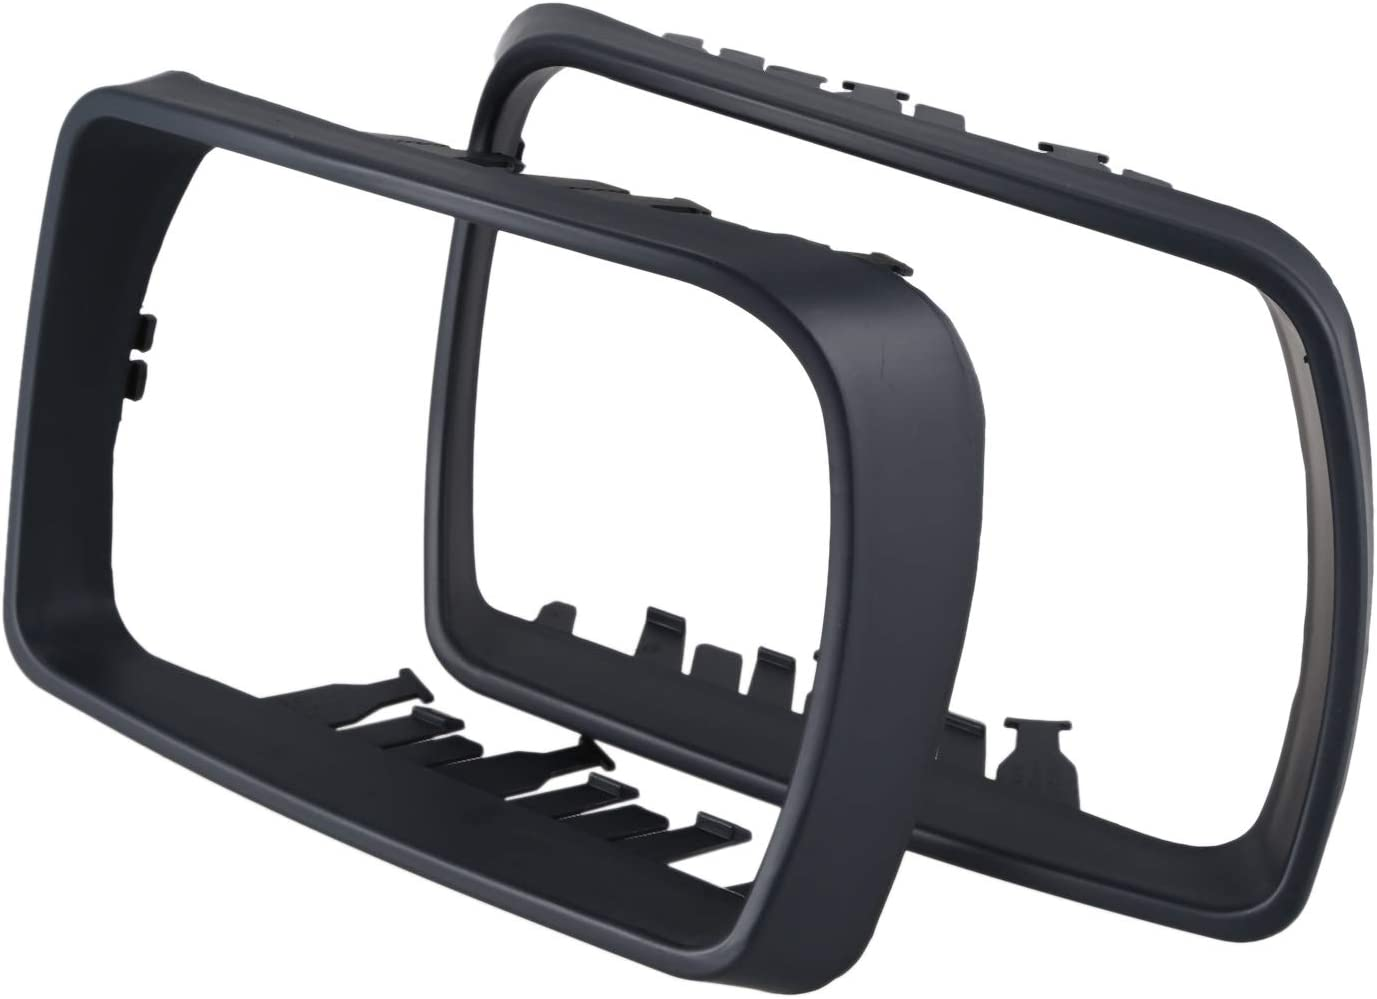 YeBetter Abs Rear View Side Mirror Cover Trim Frame Decoration,Door Wing Mirror Cover For X5 E53 3.0D//3.0I//4.4I 2000-2006 Rearview Mirror Covers